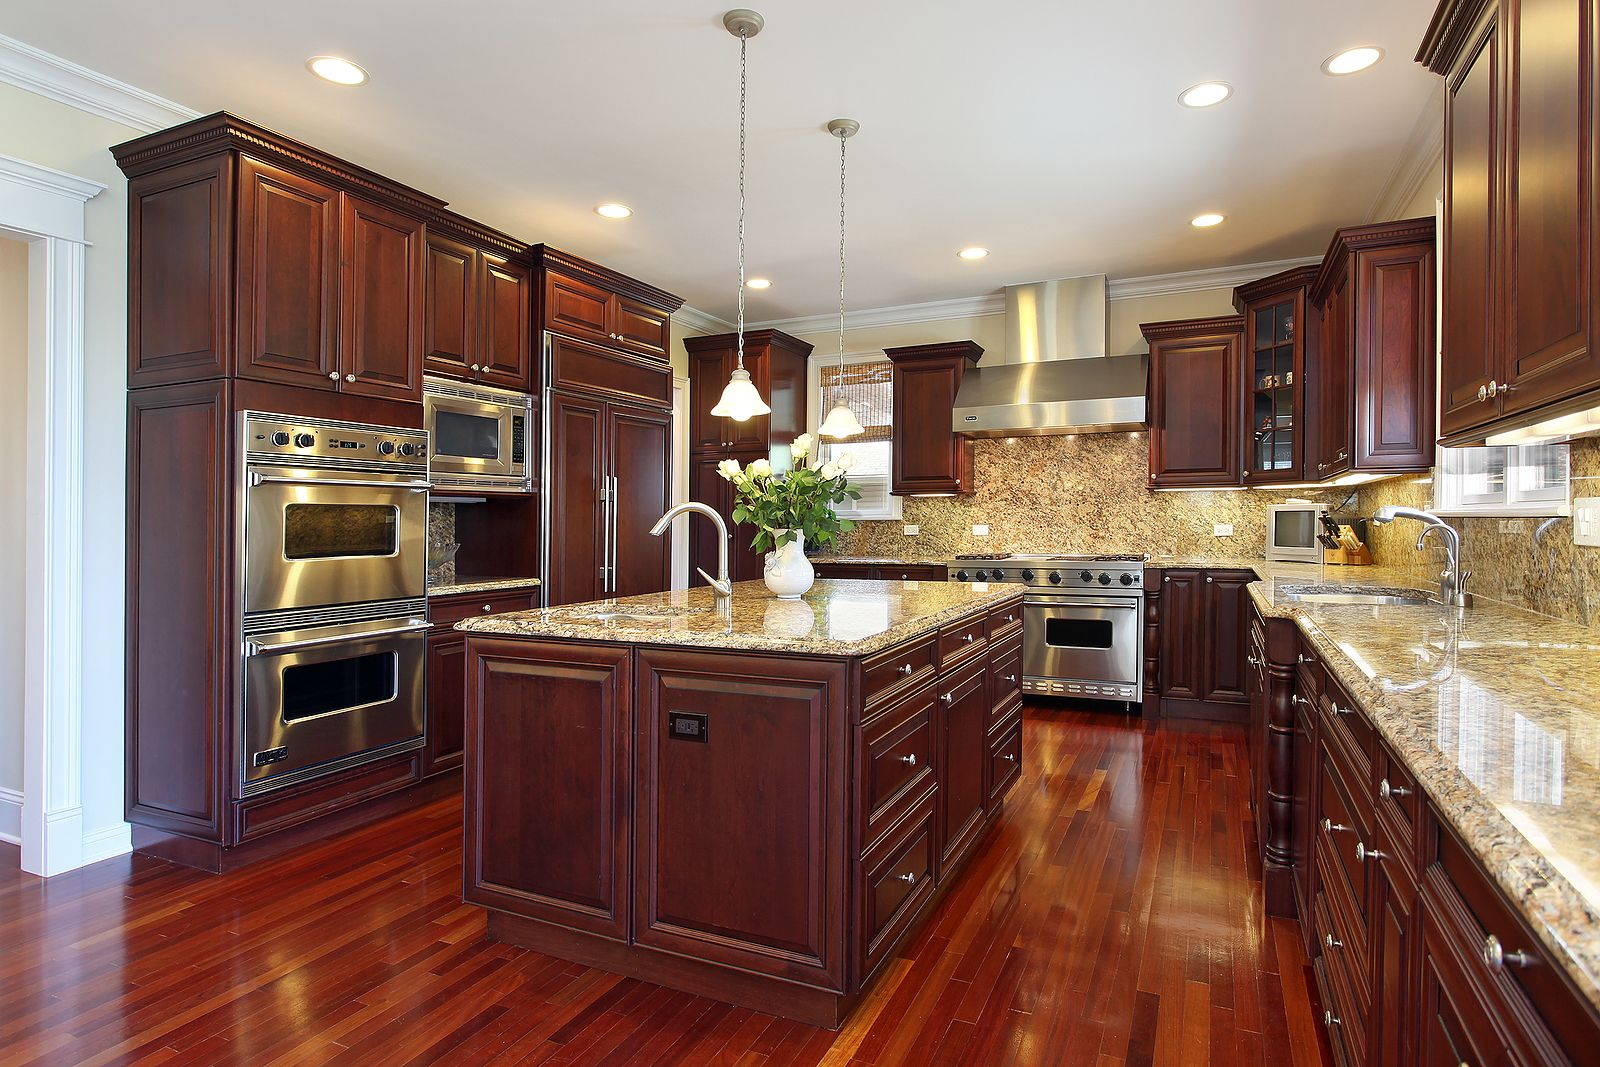 Kitchen designs cherry wood cabinets - Cherry Wood Cabinets A Must Granite Counter Tops And An Island Loving The